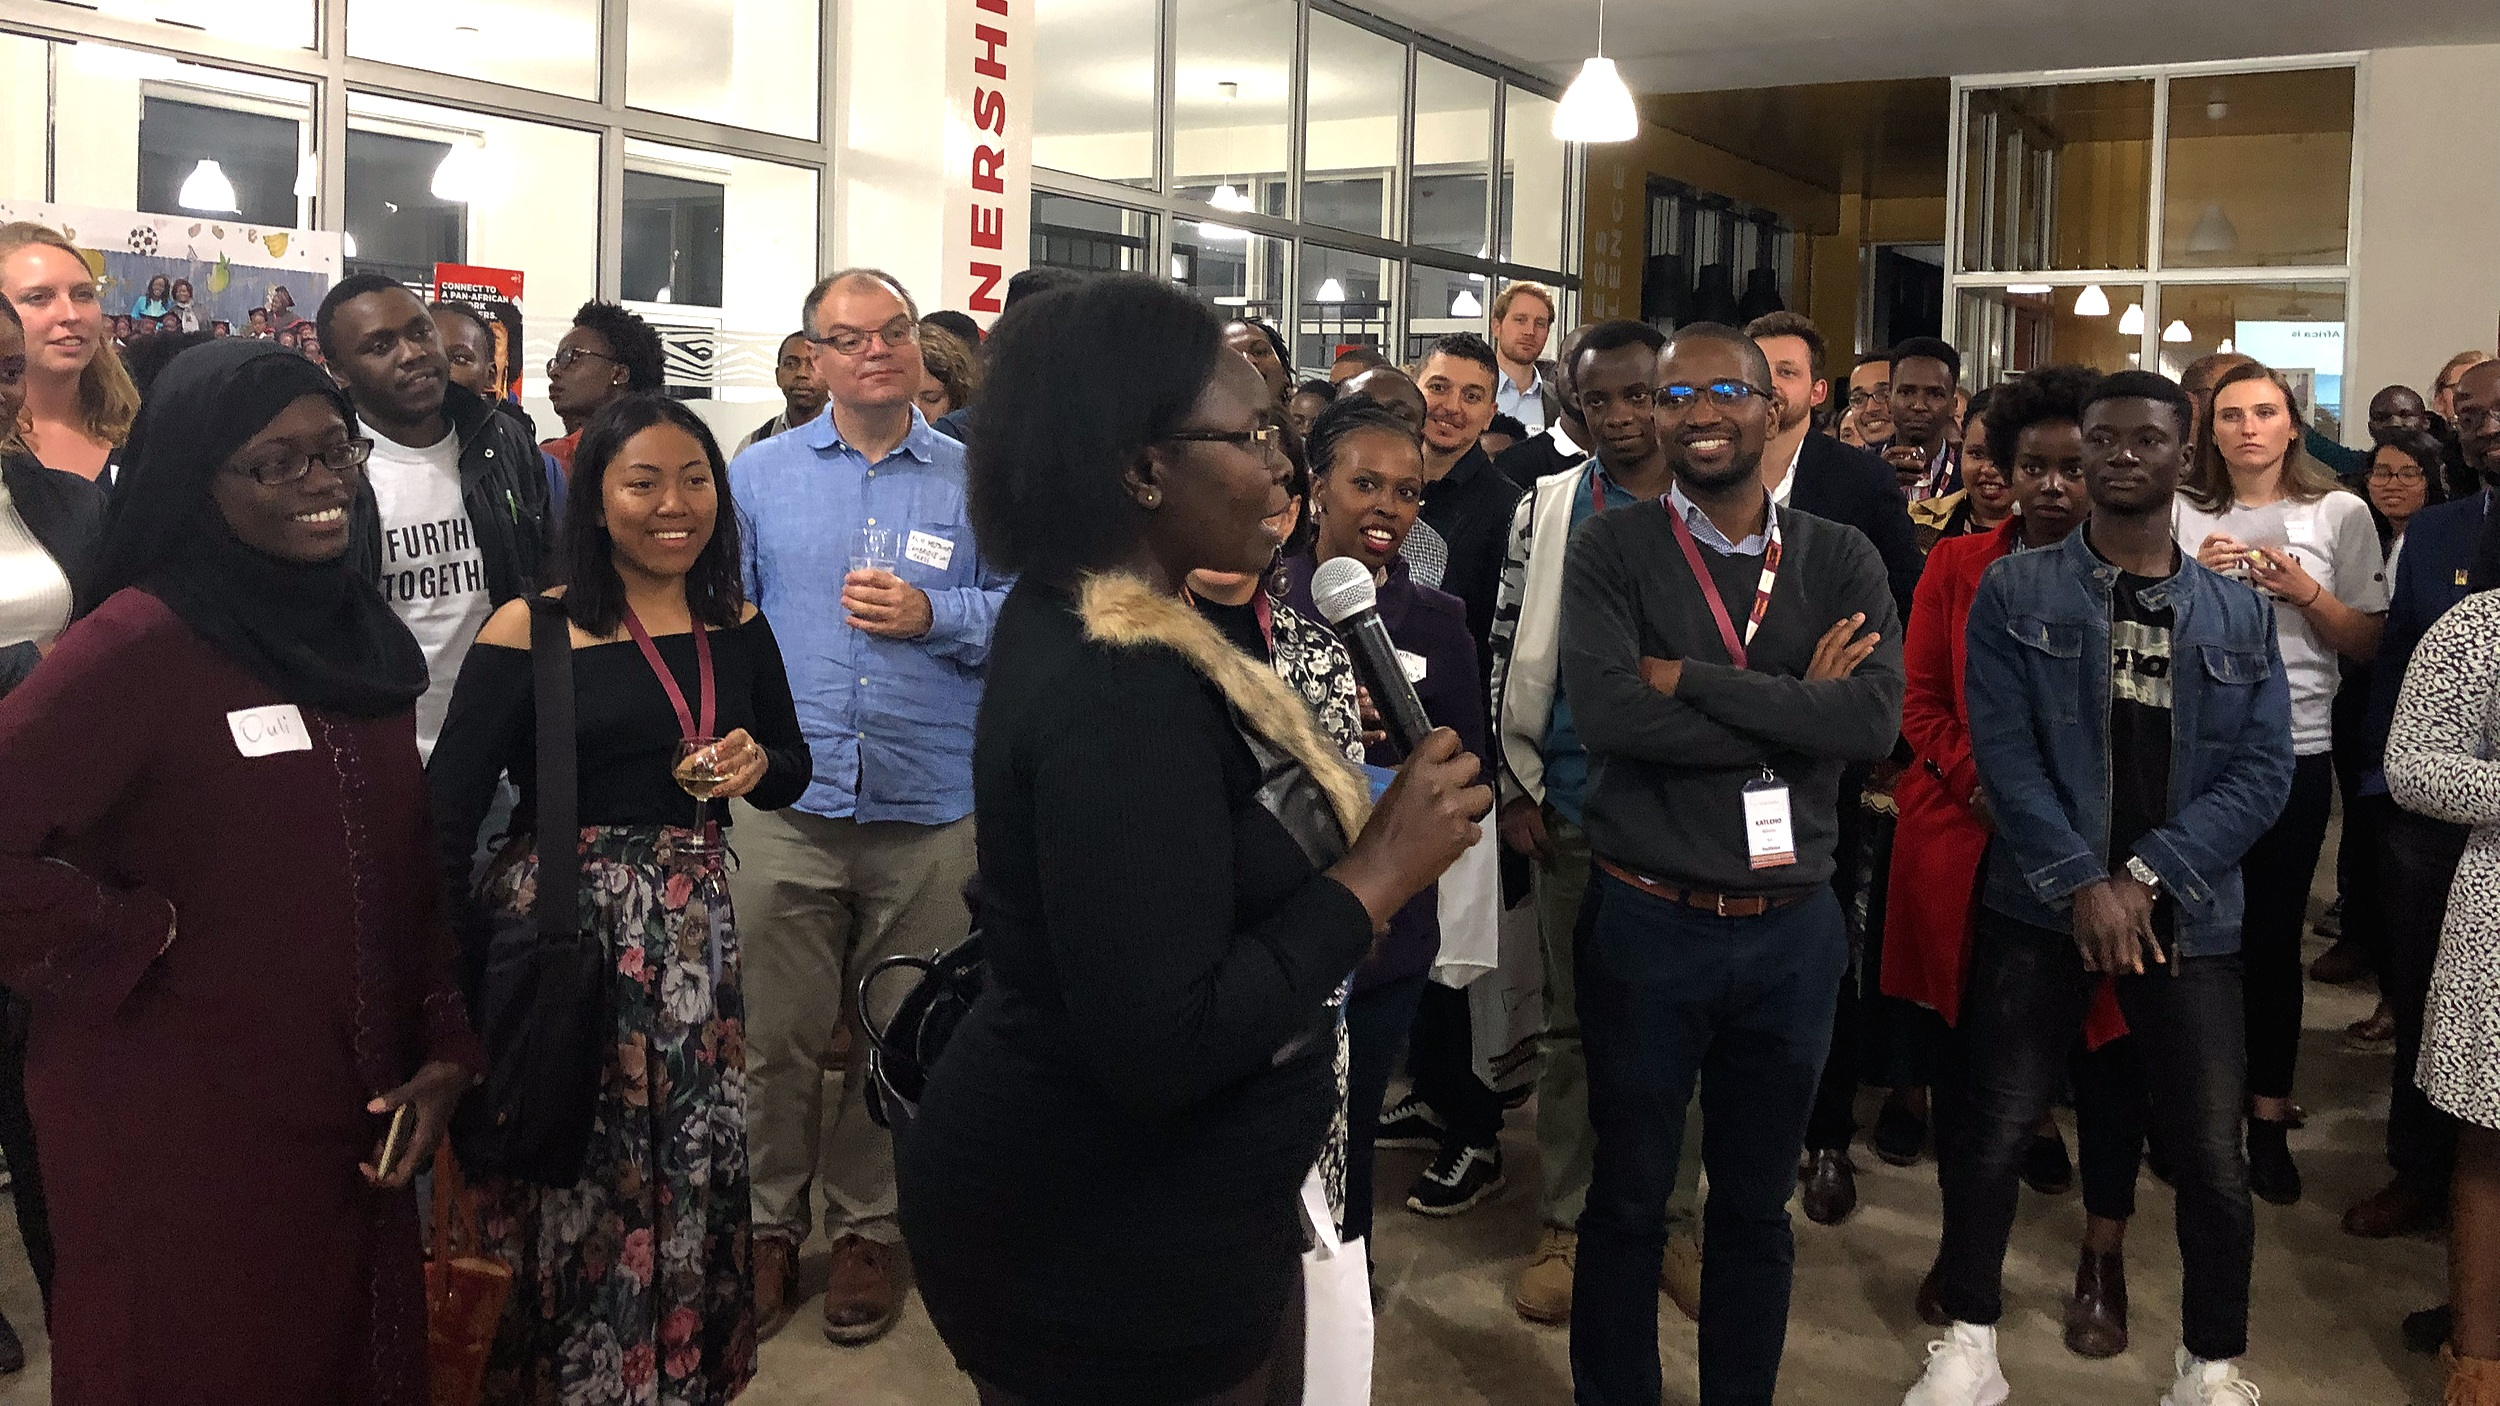 Christine Owinyi, of the government's Kenya Education Management Institute (KEMI), shares her perspective at last week's education meet-up.